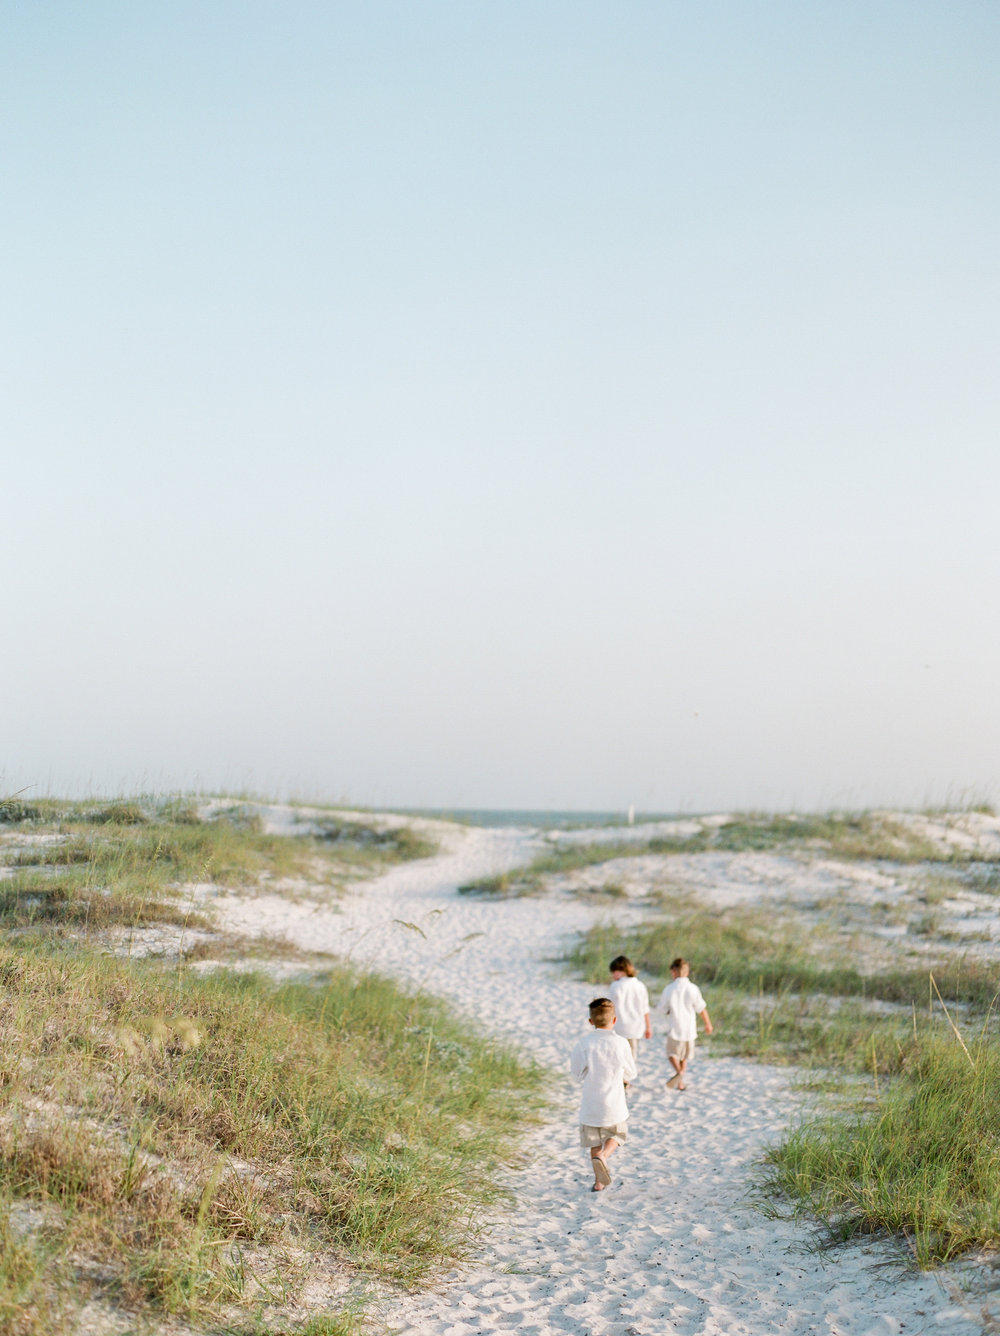 graytonbeach-fl-weddings-film-photographers-kayliebpoplin